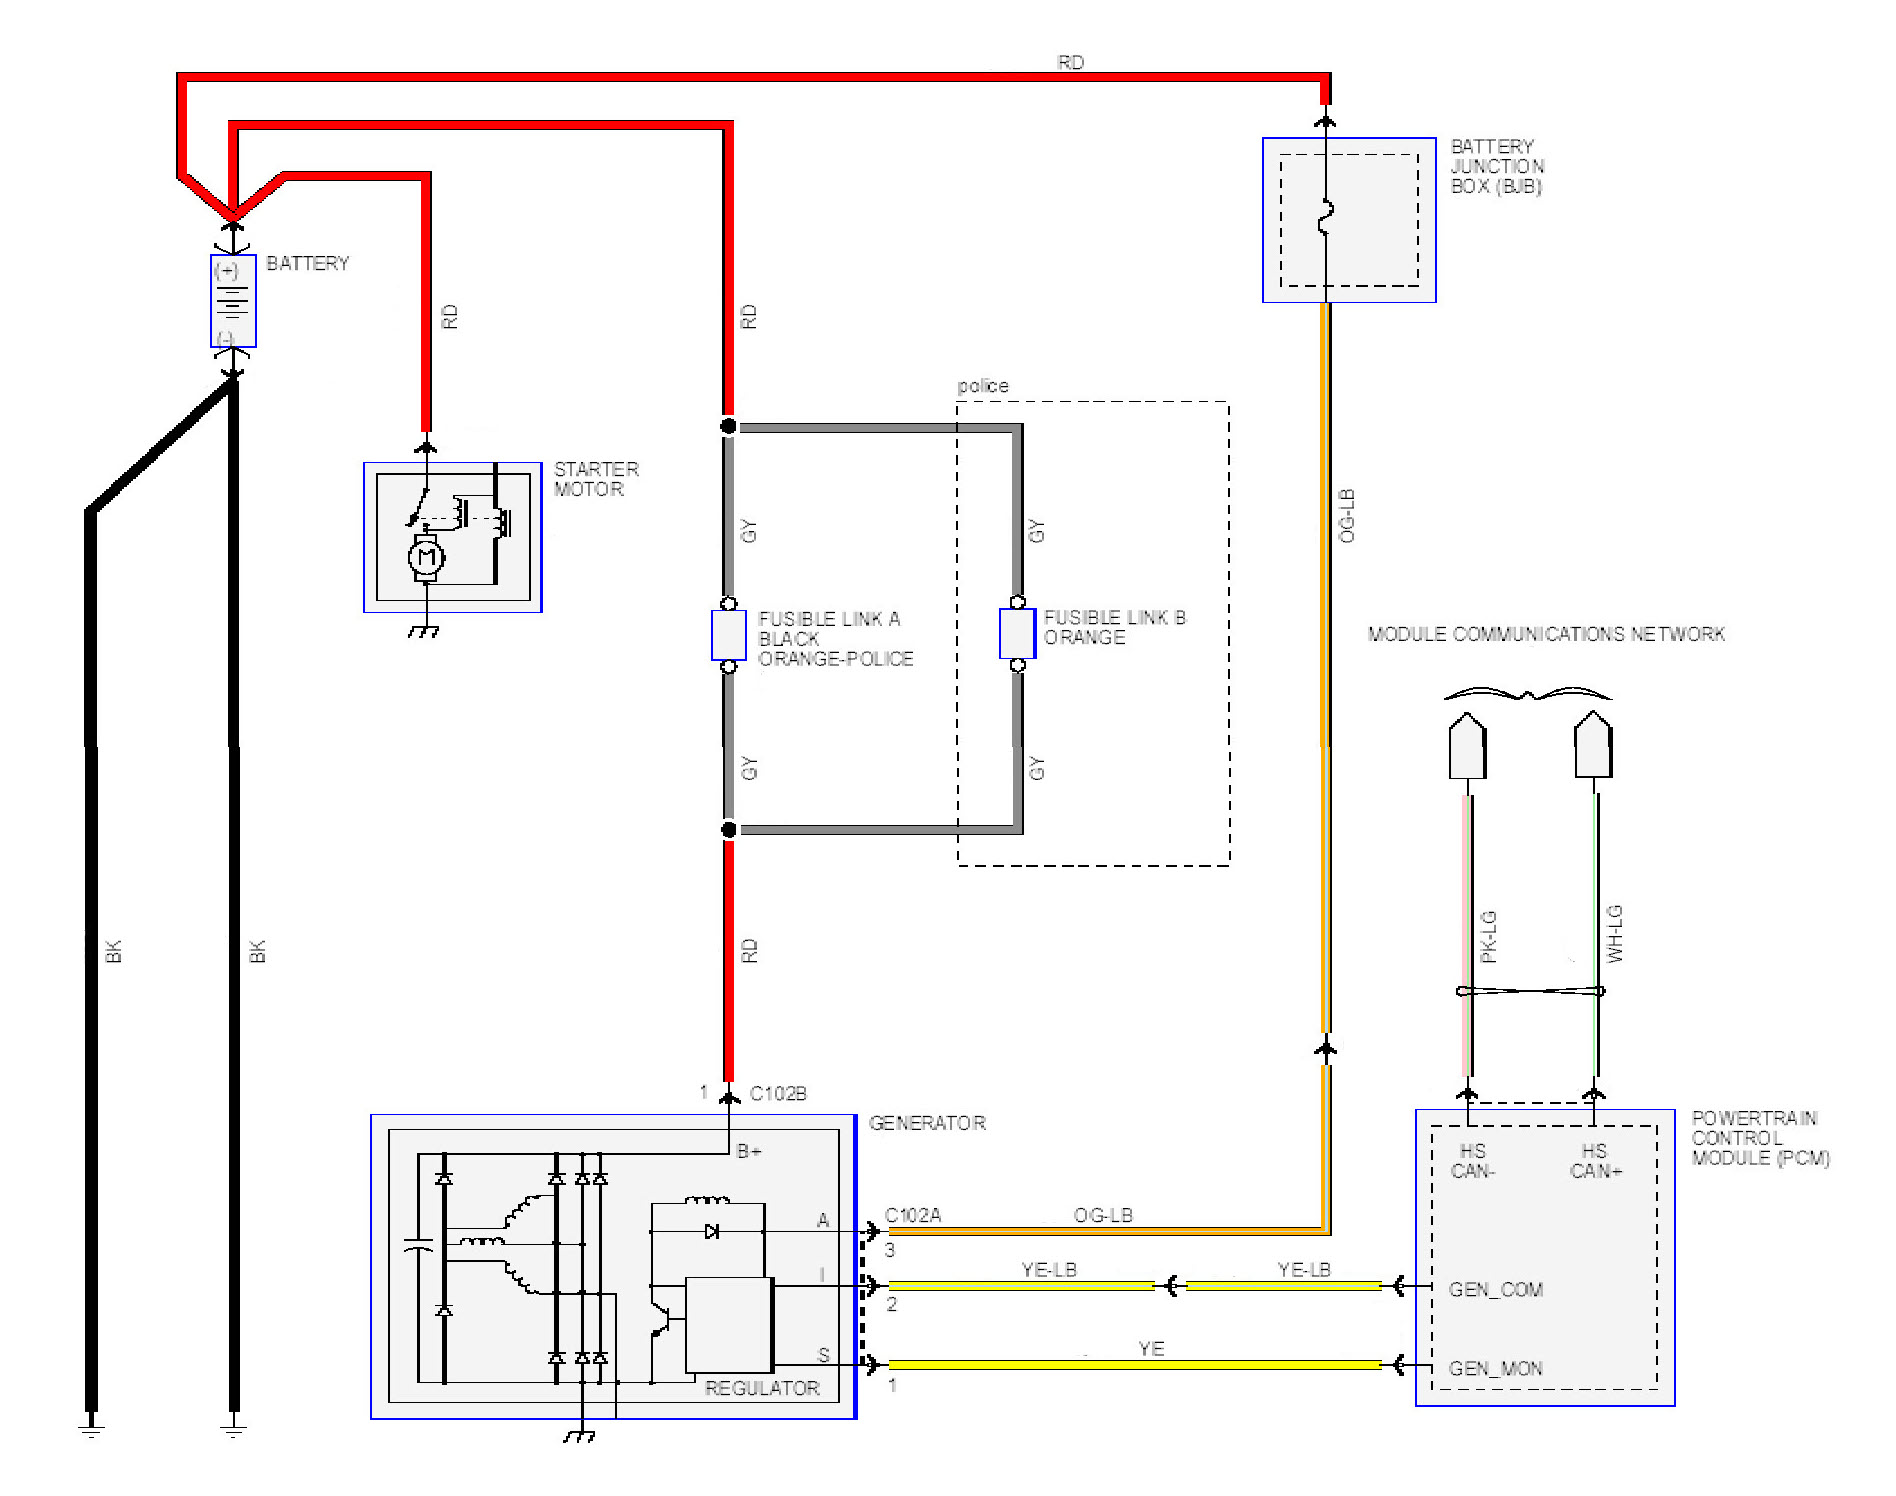 10crownviccharge ford crown victoria alternator wiring diagrams 1999 F150 Radio Wiring Diagram at gsmportal.co